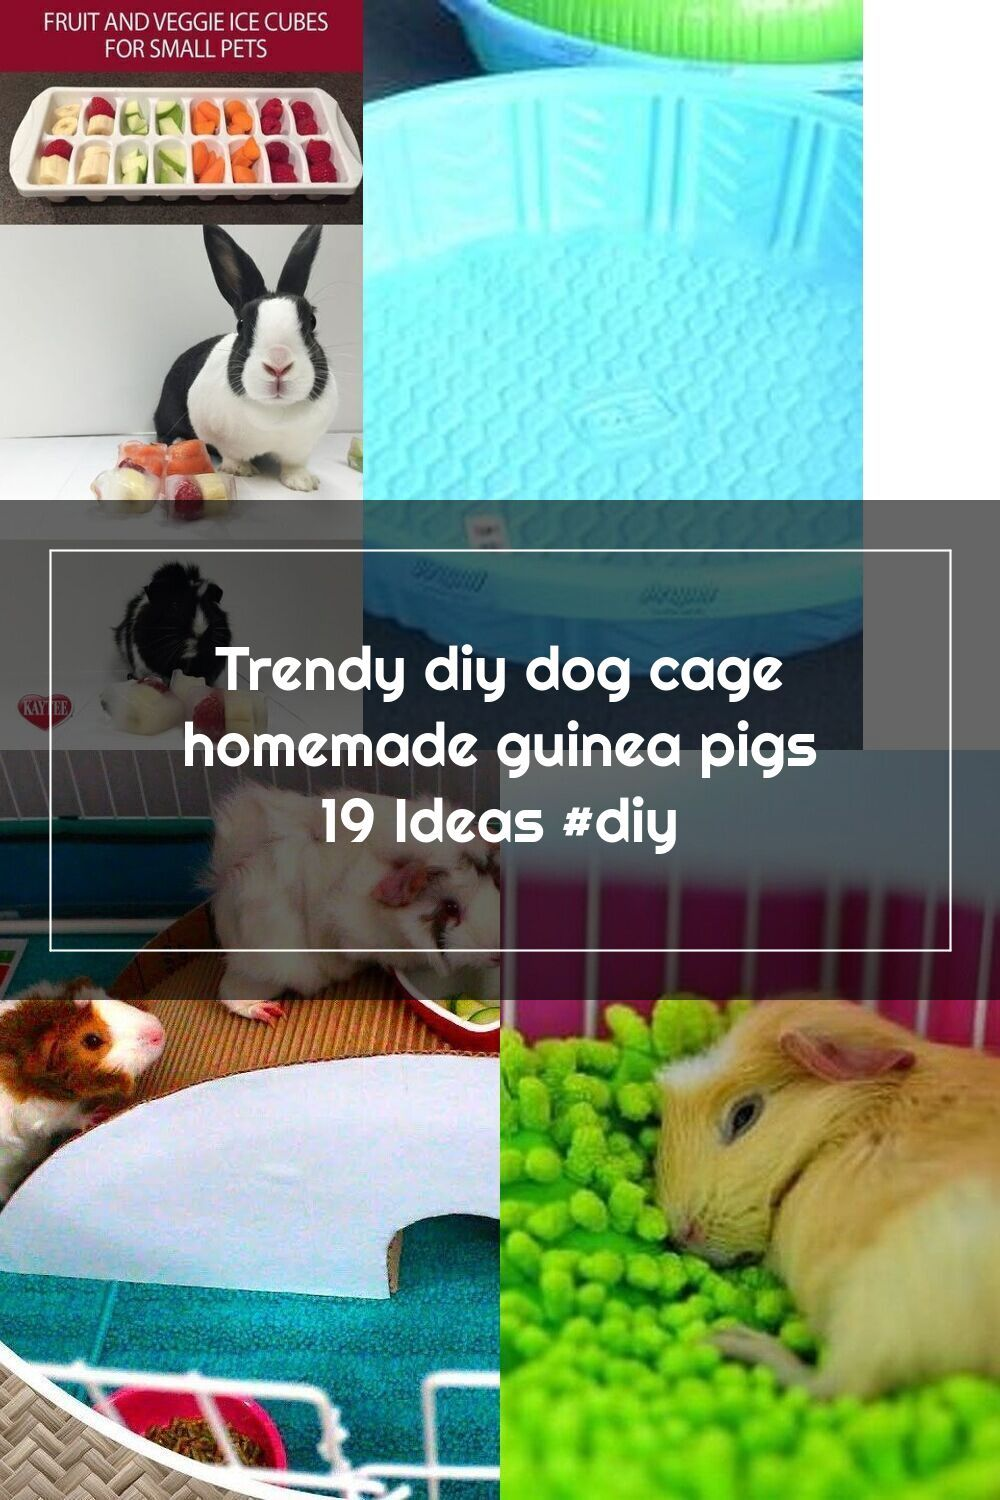 Pin On Guina Pig Ideas